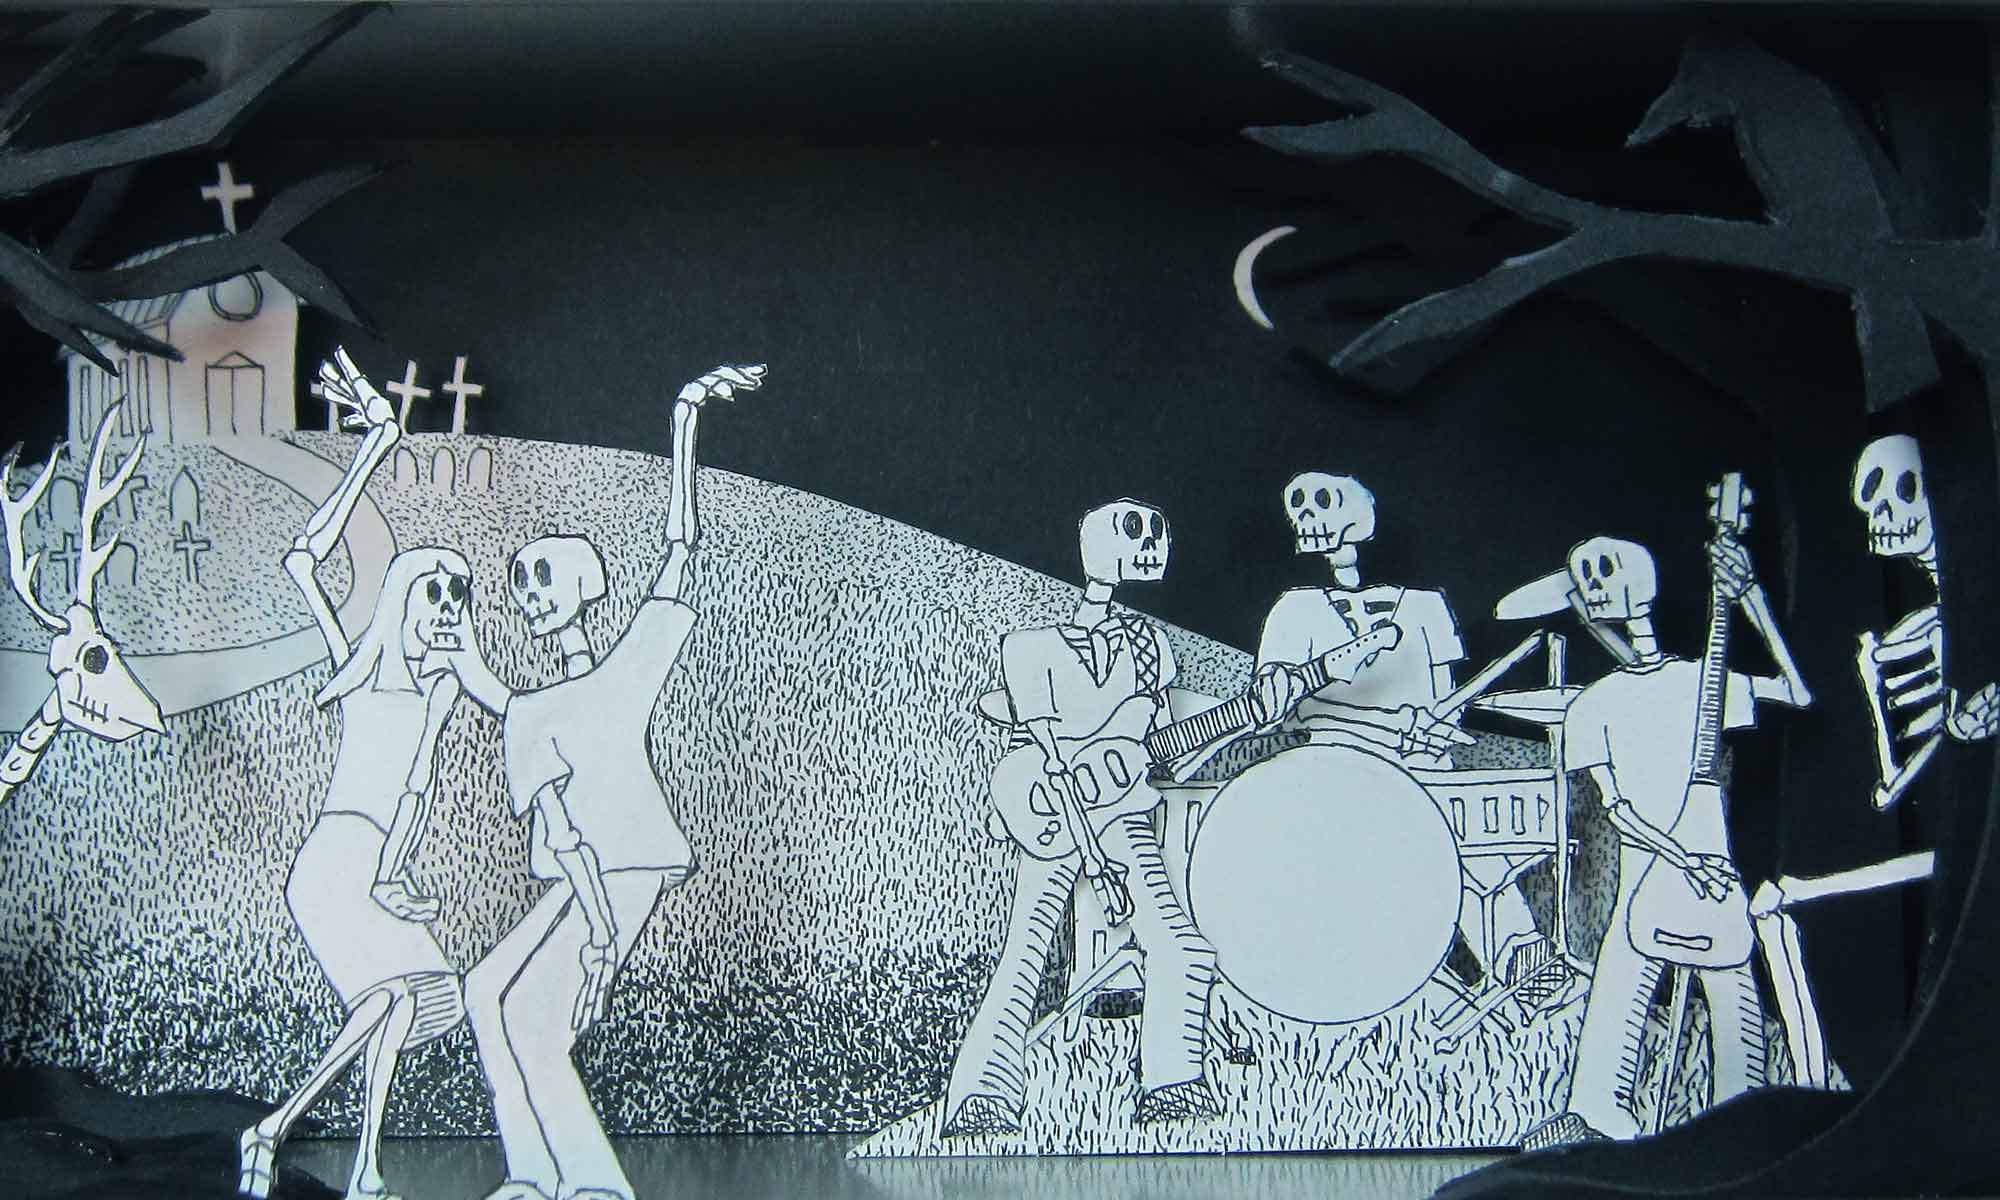 Jim Doran's Skeletons dancing